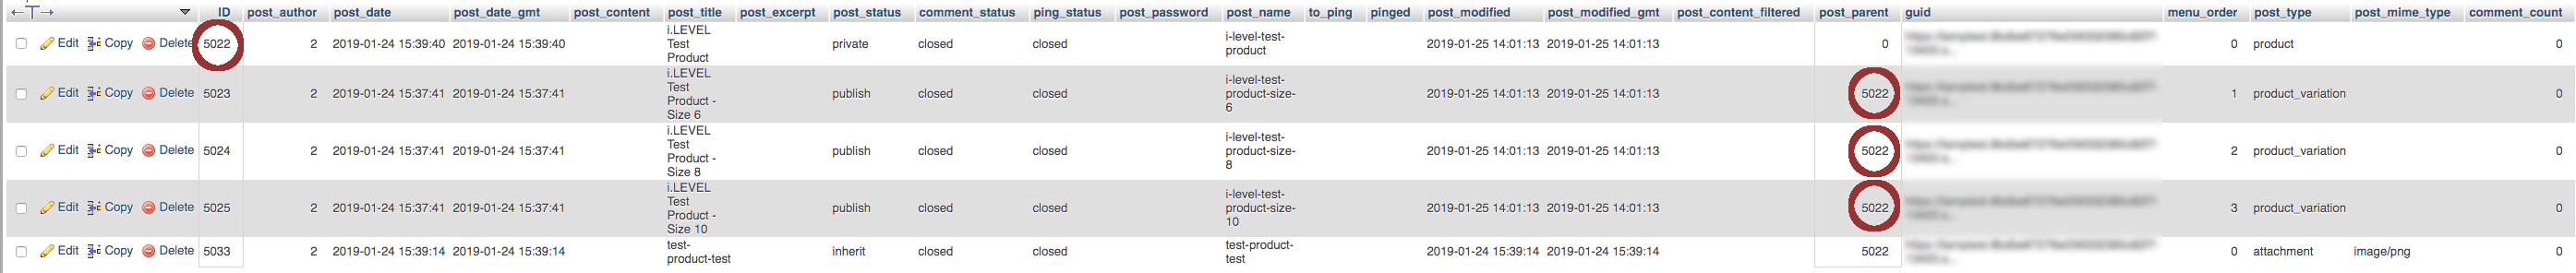 Screenshot of WooCommerce Products and related Variations in the wp_posts table